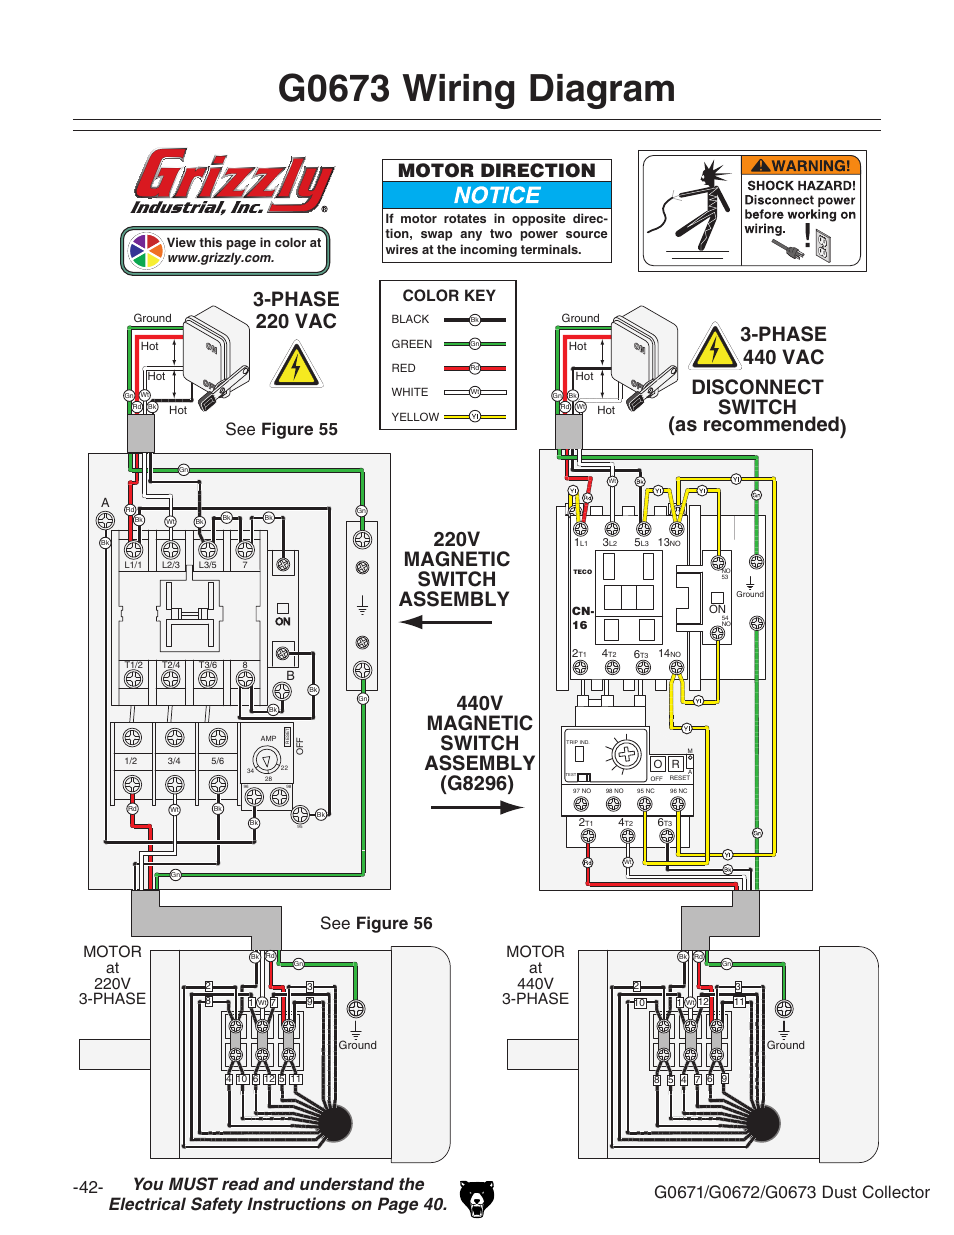 2 Pole Switch Wiring Diagram For 220v Electrical 220 Vac A Magnetic Circuit Connection U2022 Wire Breaker